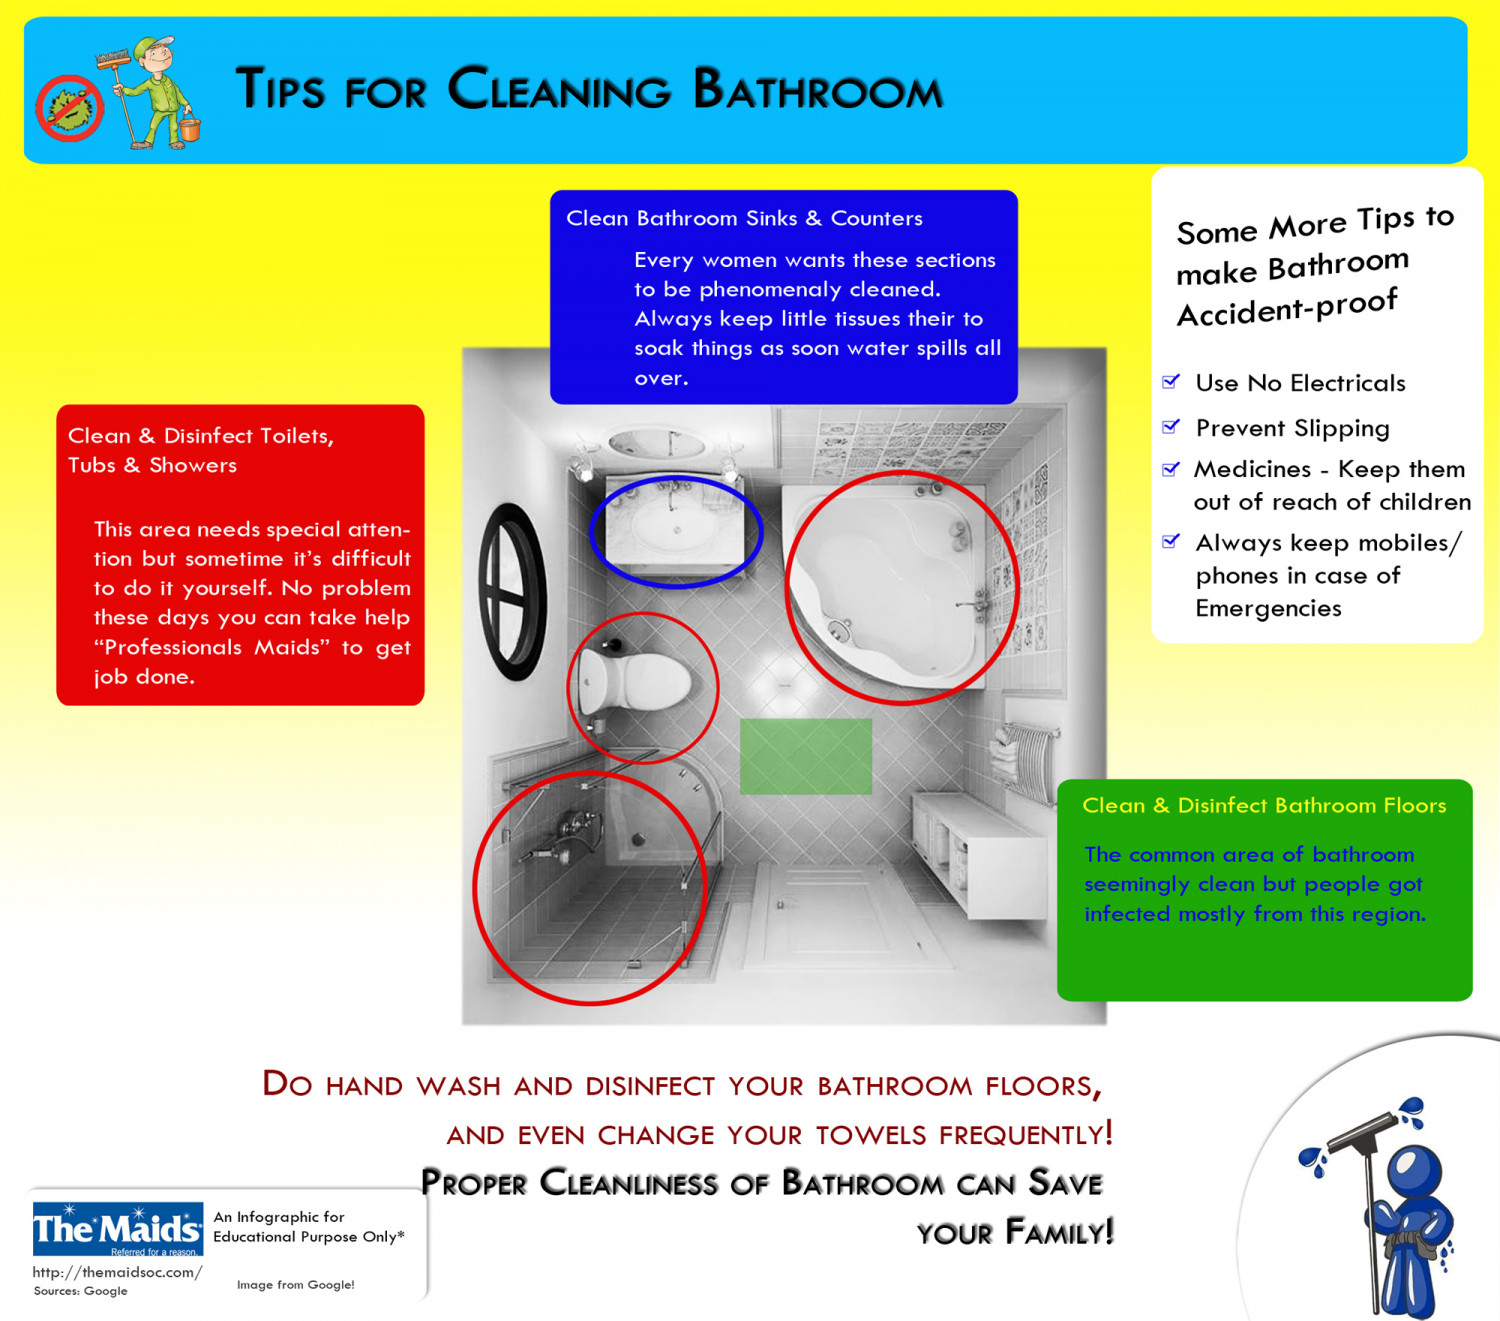 Tips for Cleaning Bathroom Infographic